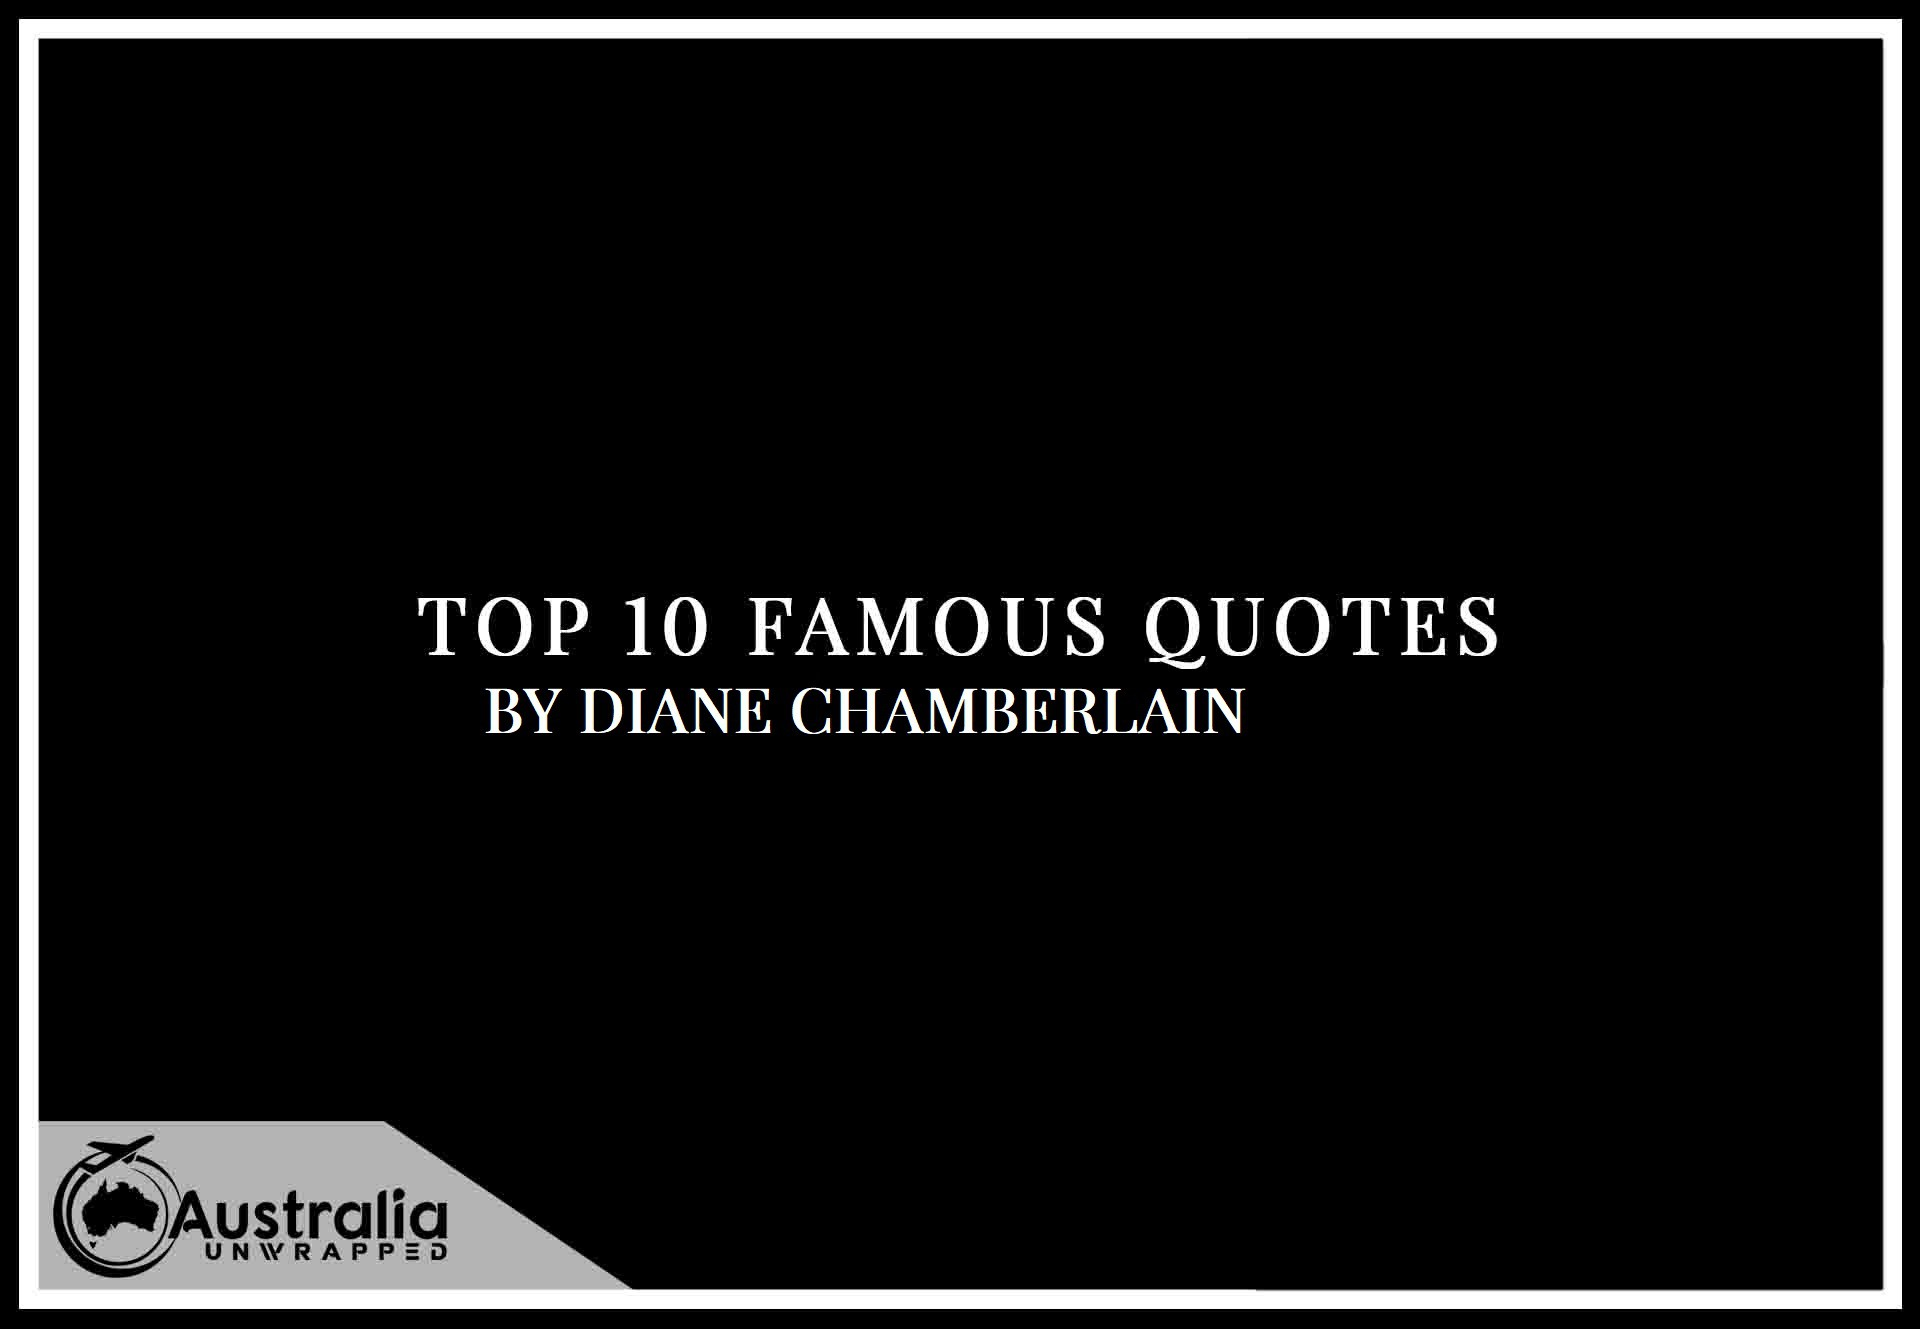 Top 10 Famous Quotes by Author Diane Chamberlain